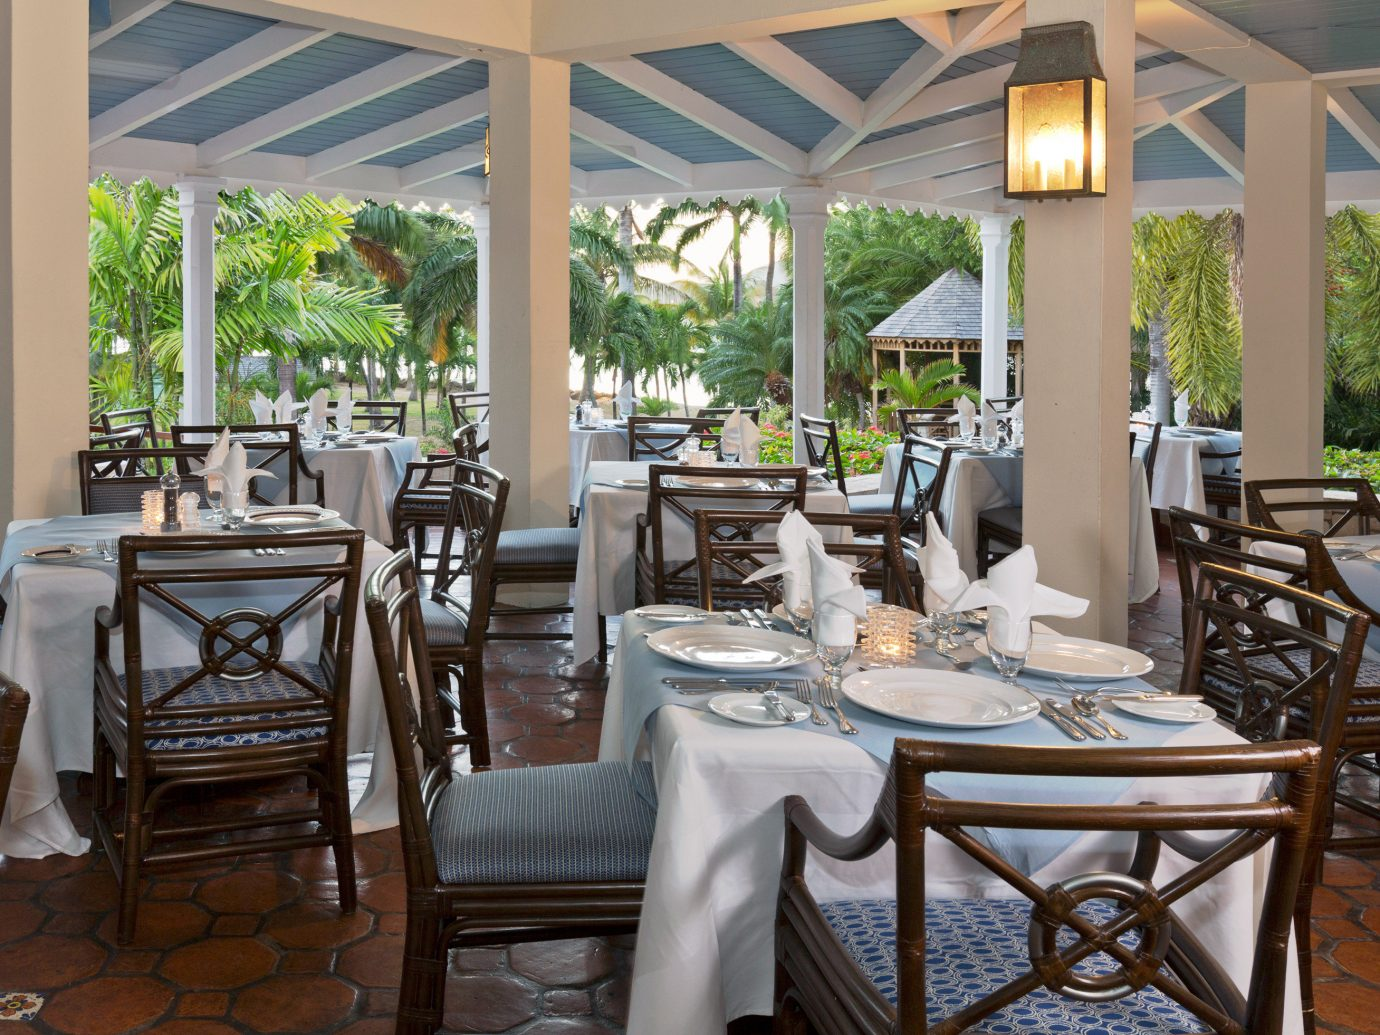 All-Inclusive Resorts Beachfront caribbean Dining Drink Eat Family Travel Hotels Island Romance Romantic Tropical table floor chair indoor property room dining room restaurant window Resort estate meal home porch furniture Villa real estate interior design cottage outdoor structure area set dining table